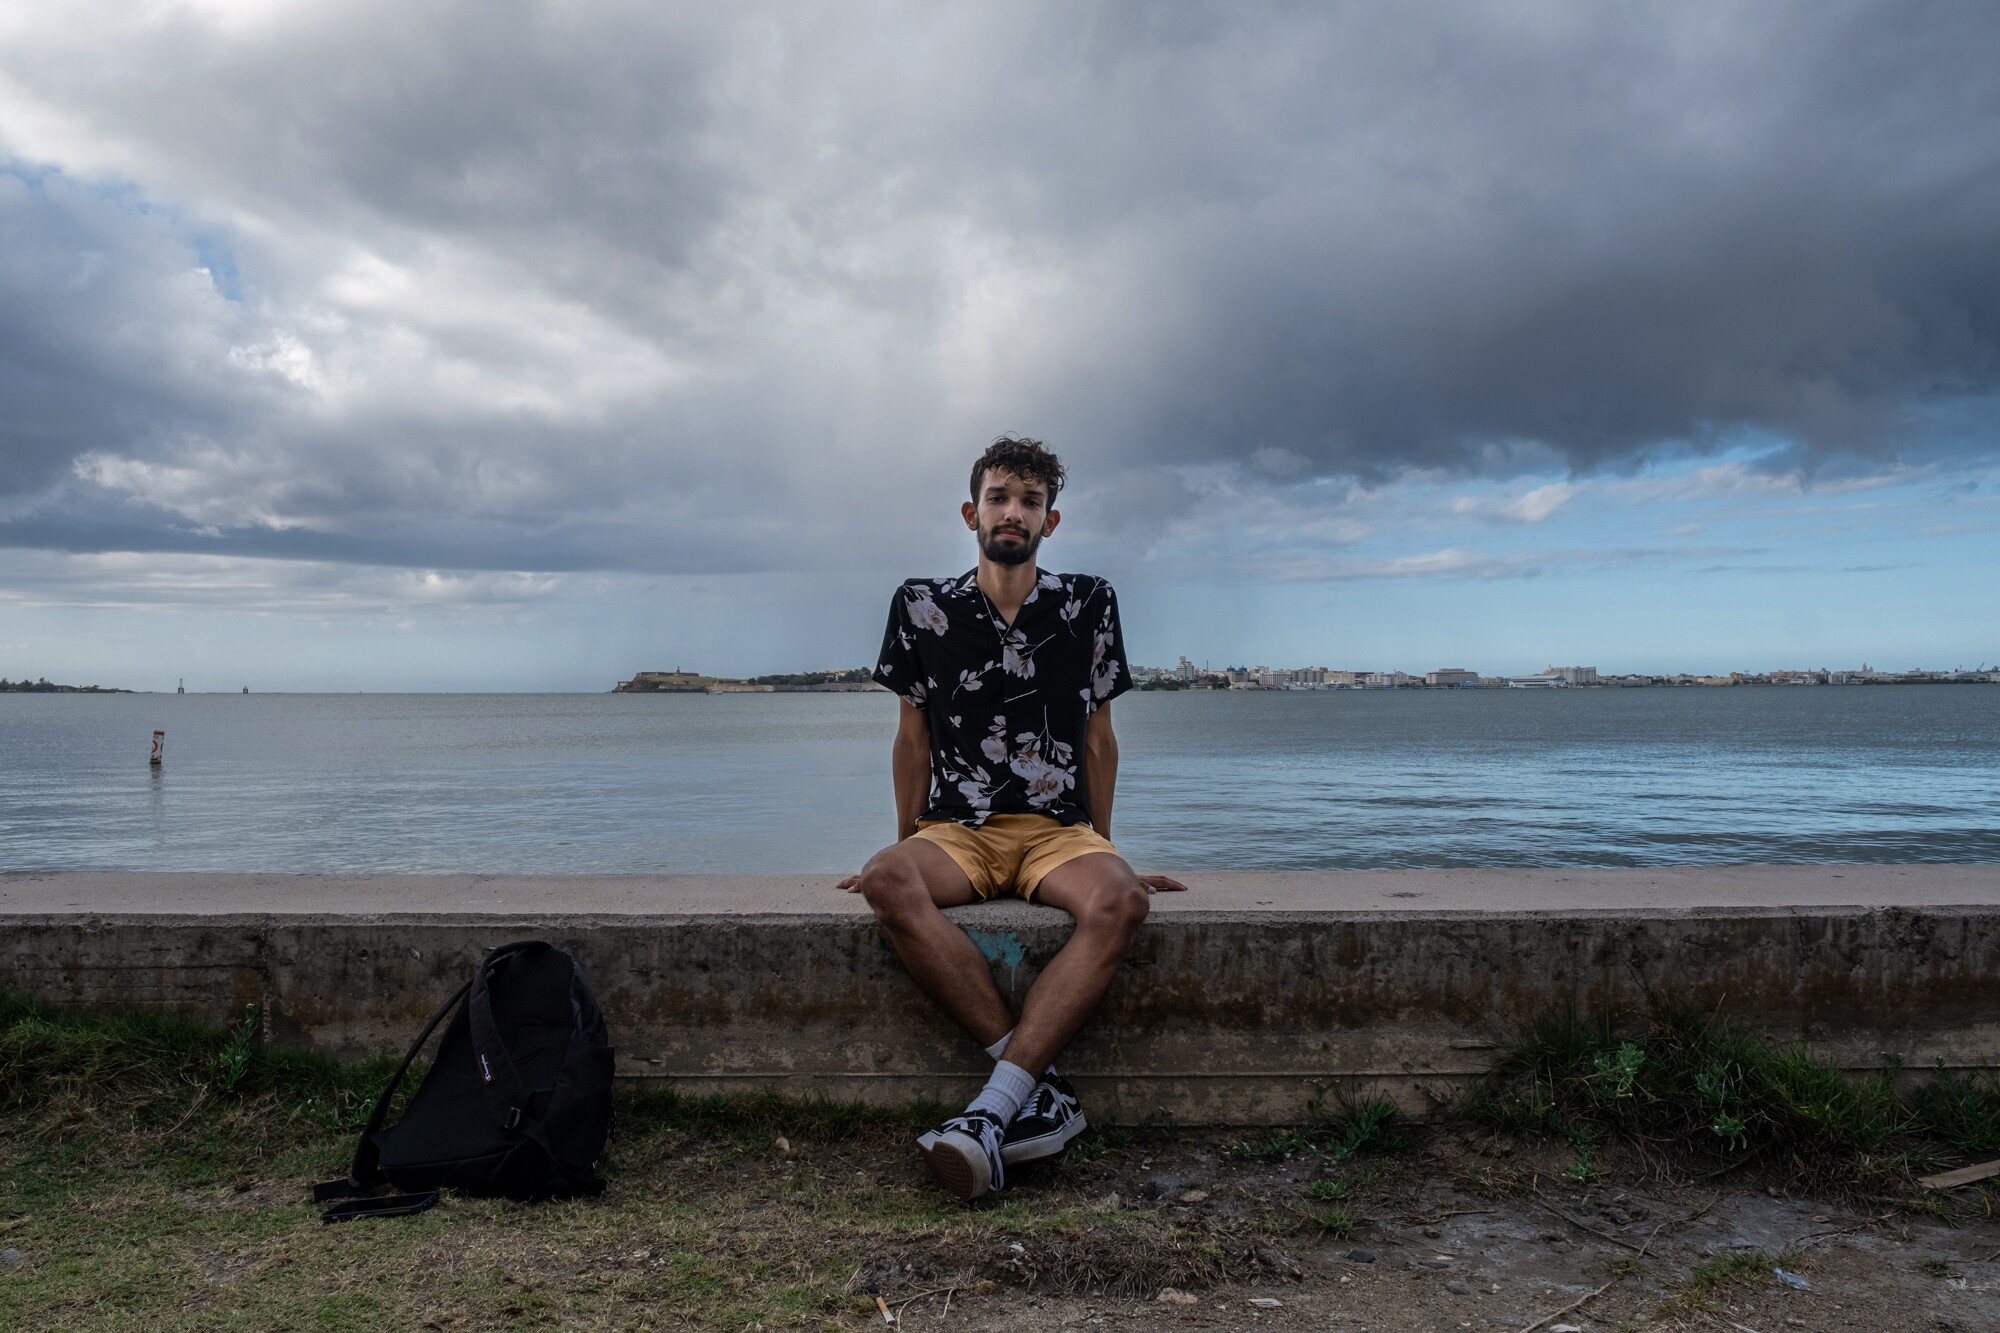 Kemuel Delgado sitting on a short wall, with a beach and the ocean behind him.